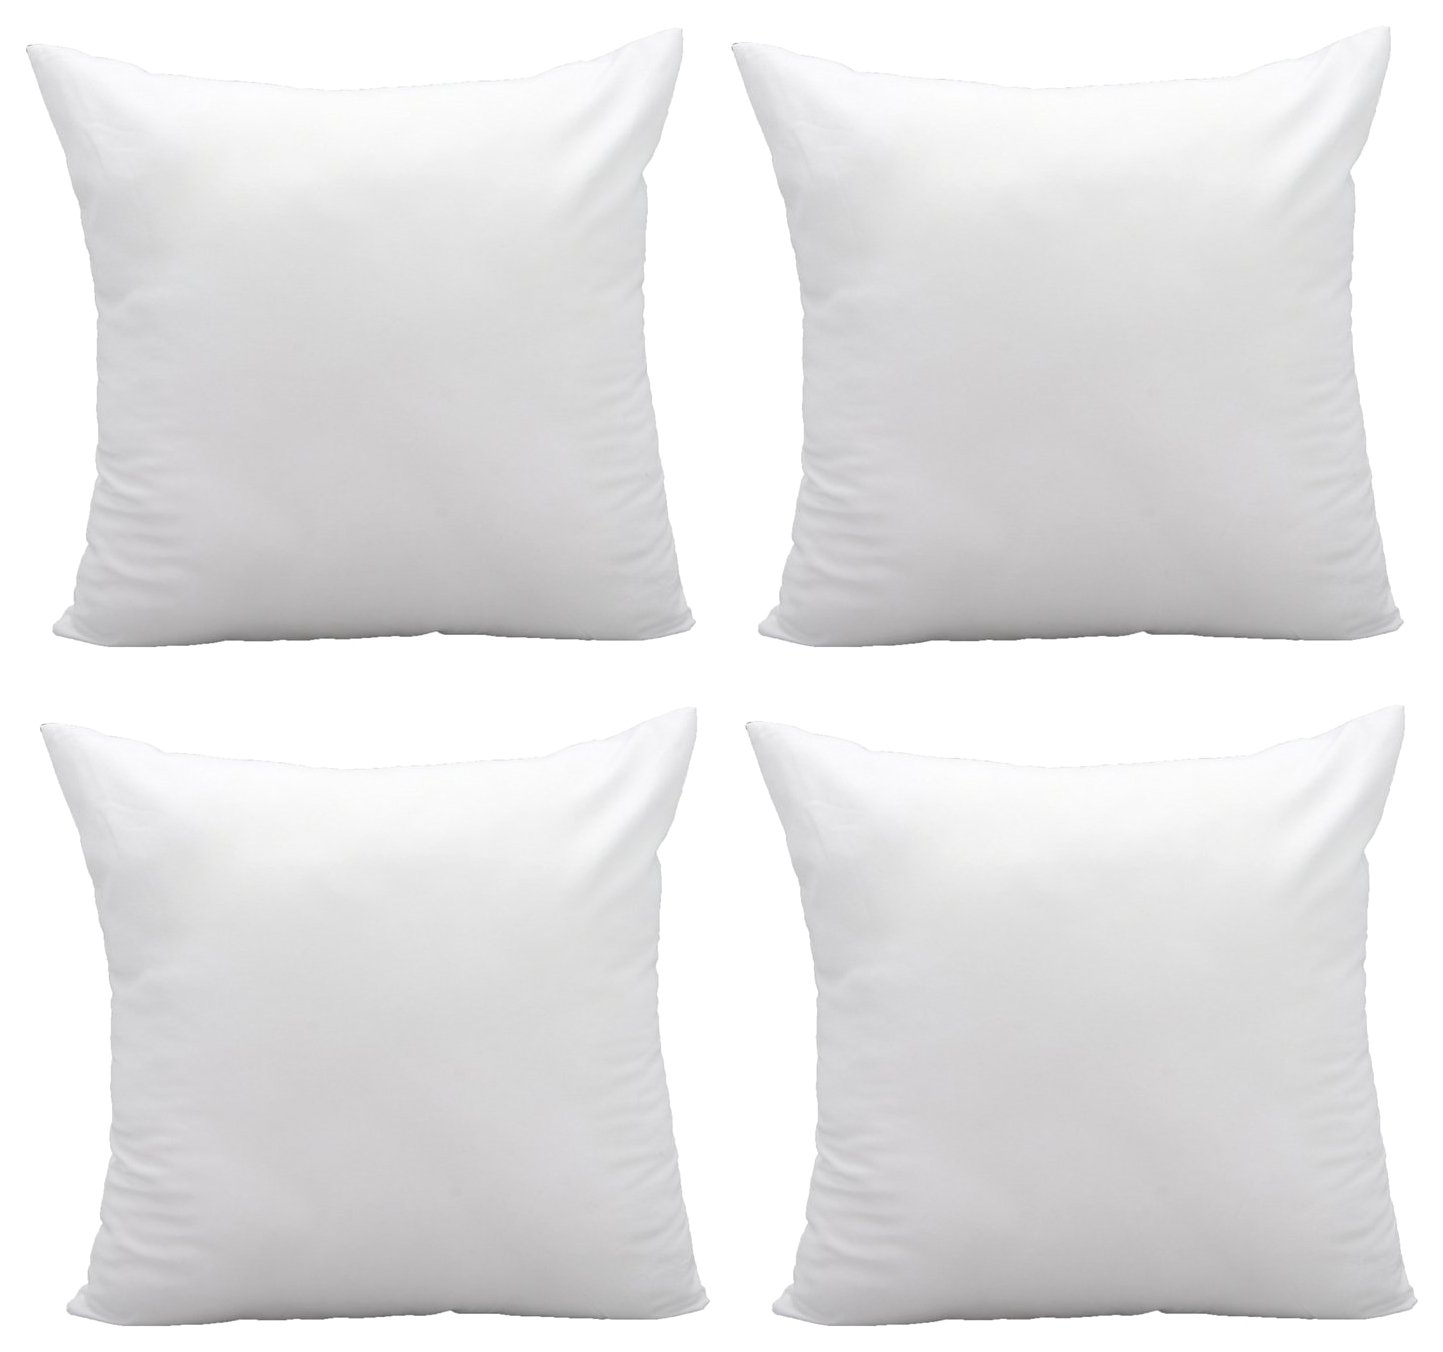 inner gives gb body filling ikea products and support rugs en its art white polyester soft filler pillow cushions holds your the cm shape pad cushion textiles